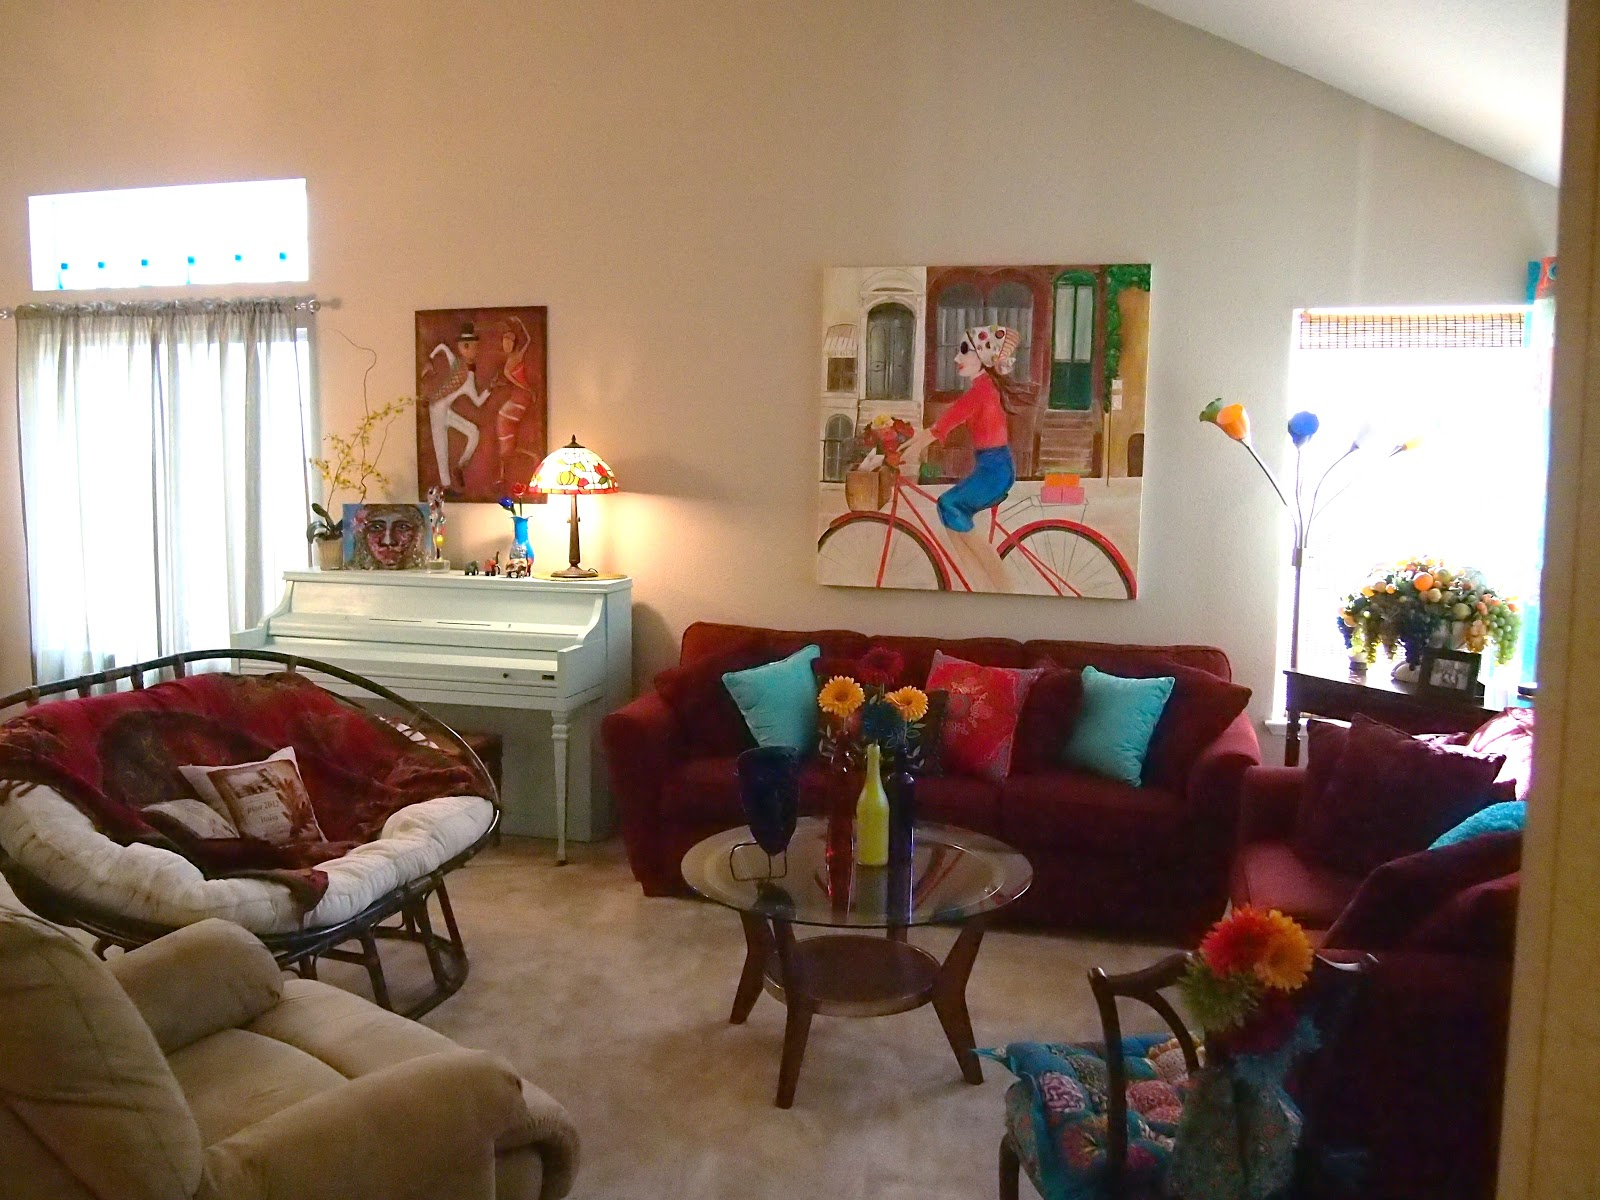 INSPIRATION SALVATION: BOHO CHIC LIVING ROOM - THE COMPLETION